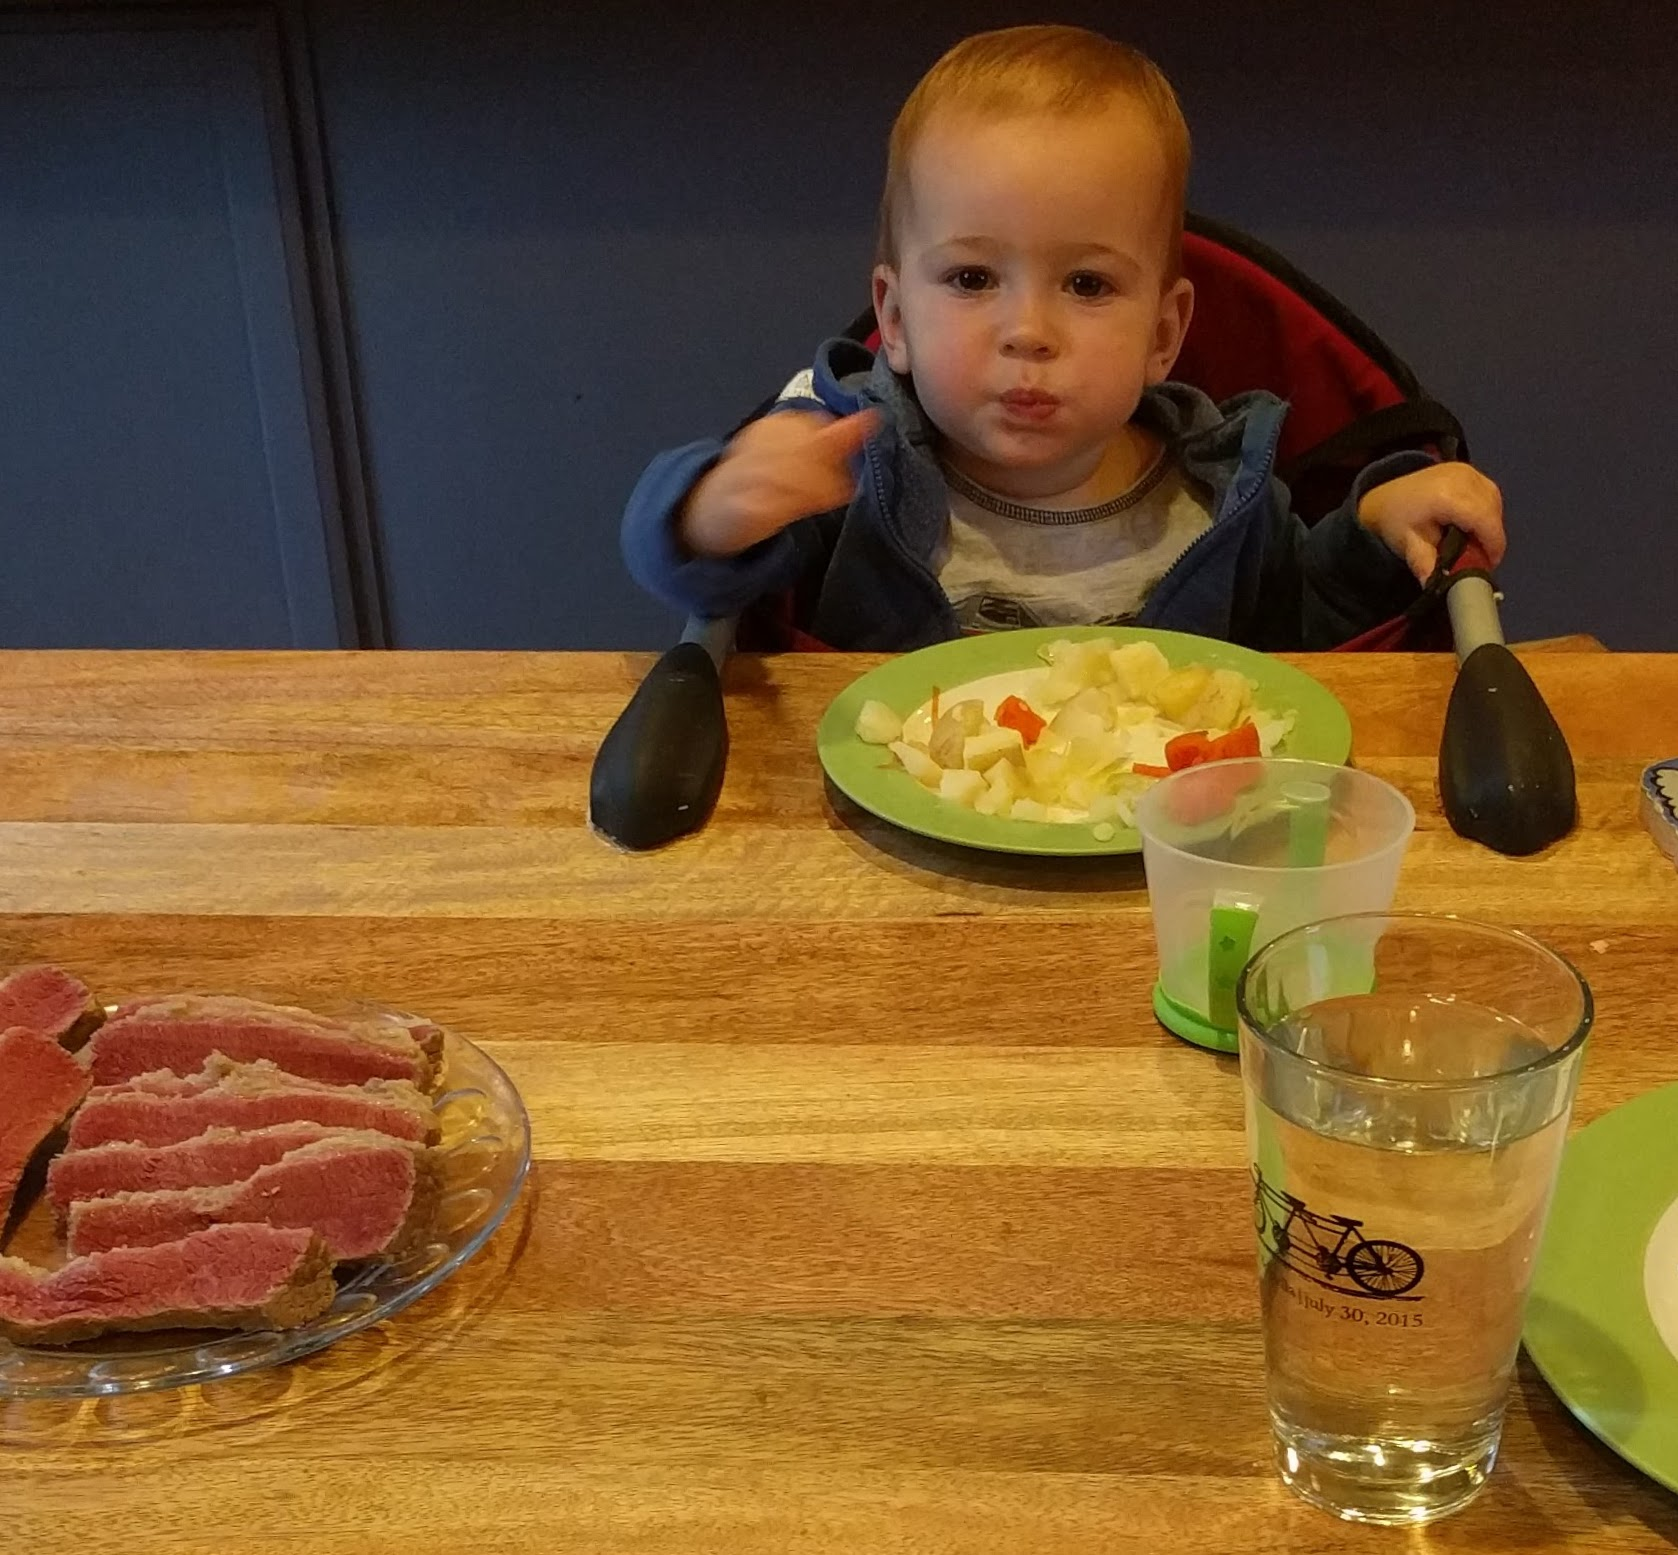 You don't want to get between this kid and his dinner. Seriously.